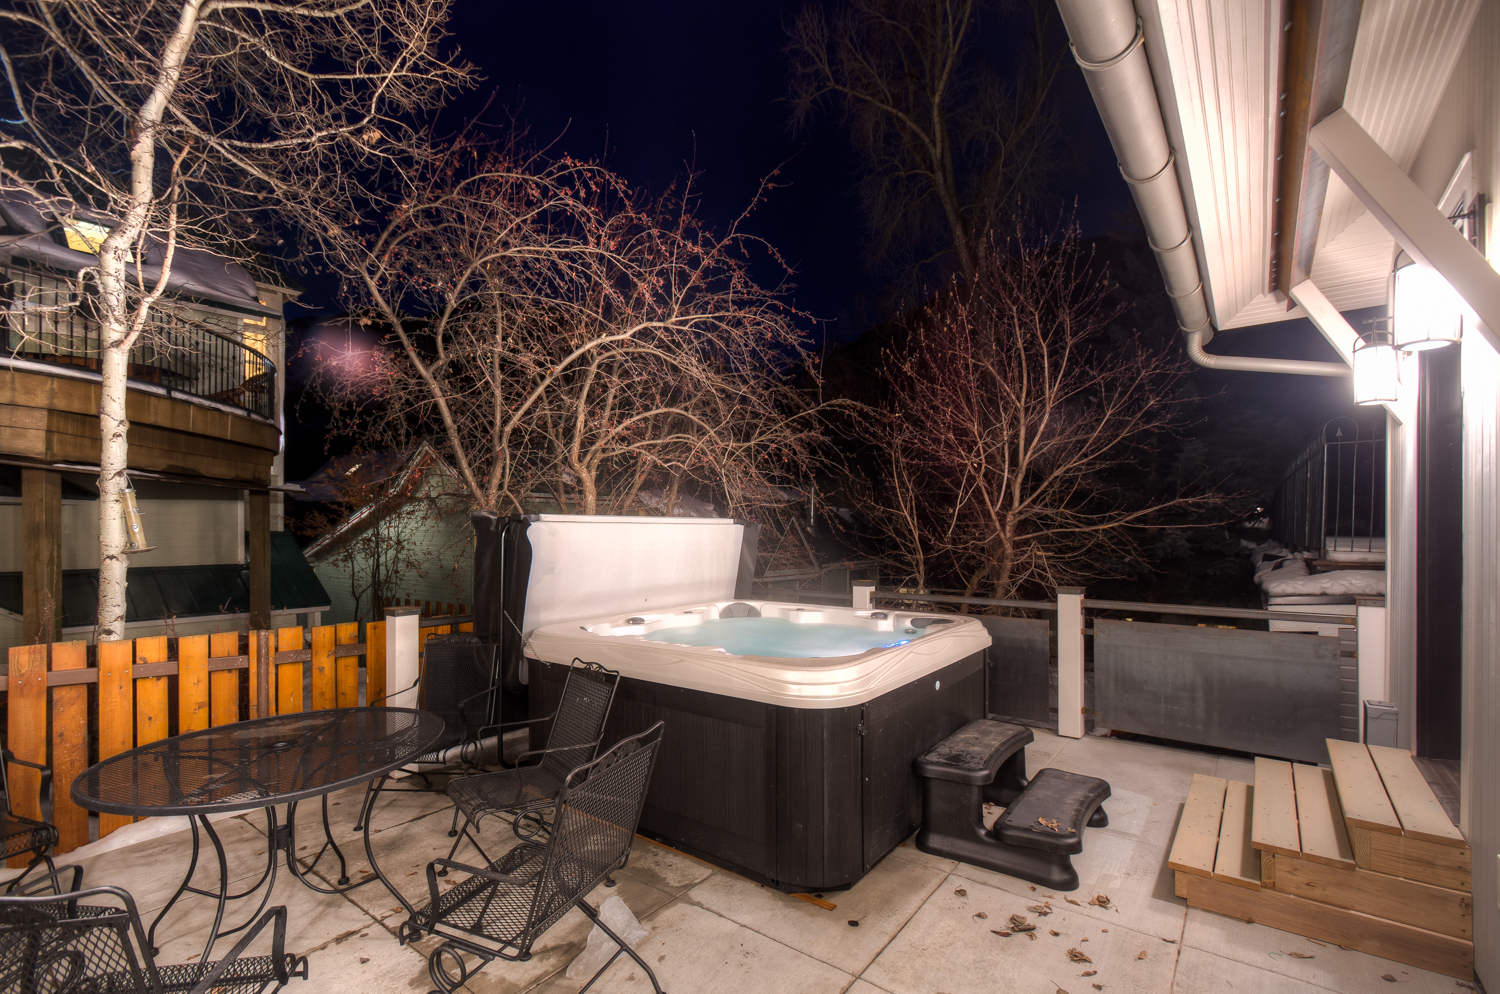 Back Patio with Hot Tub and Outdoor Seating for 6 at Miles High